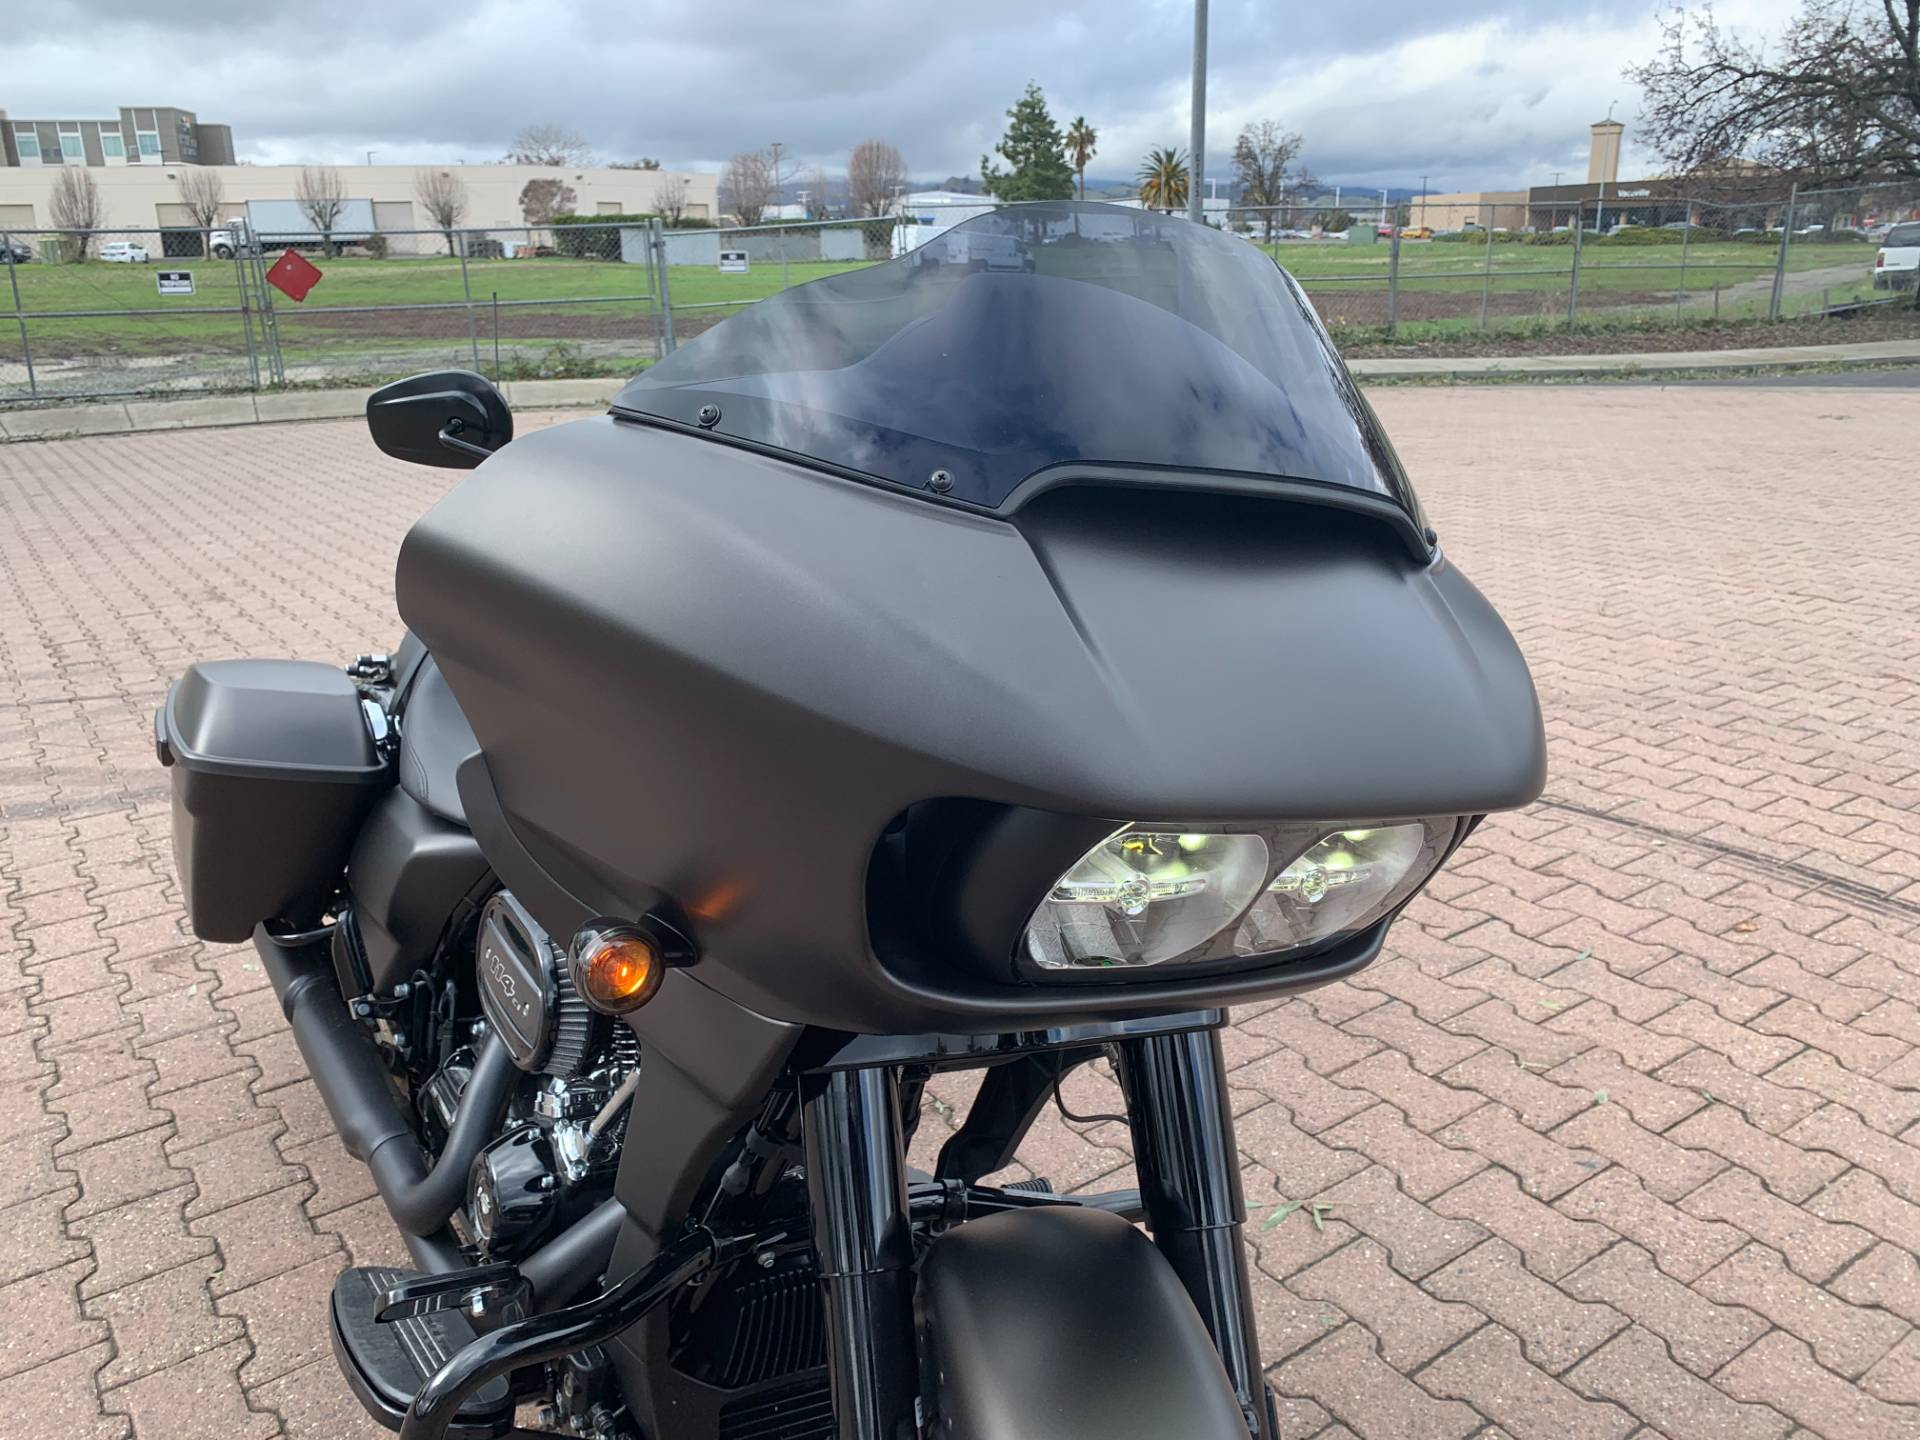 2021 Harley-Davidson Road Glide Special in Vacaville, California - Photo 5